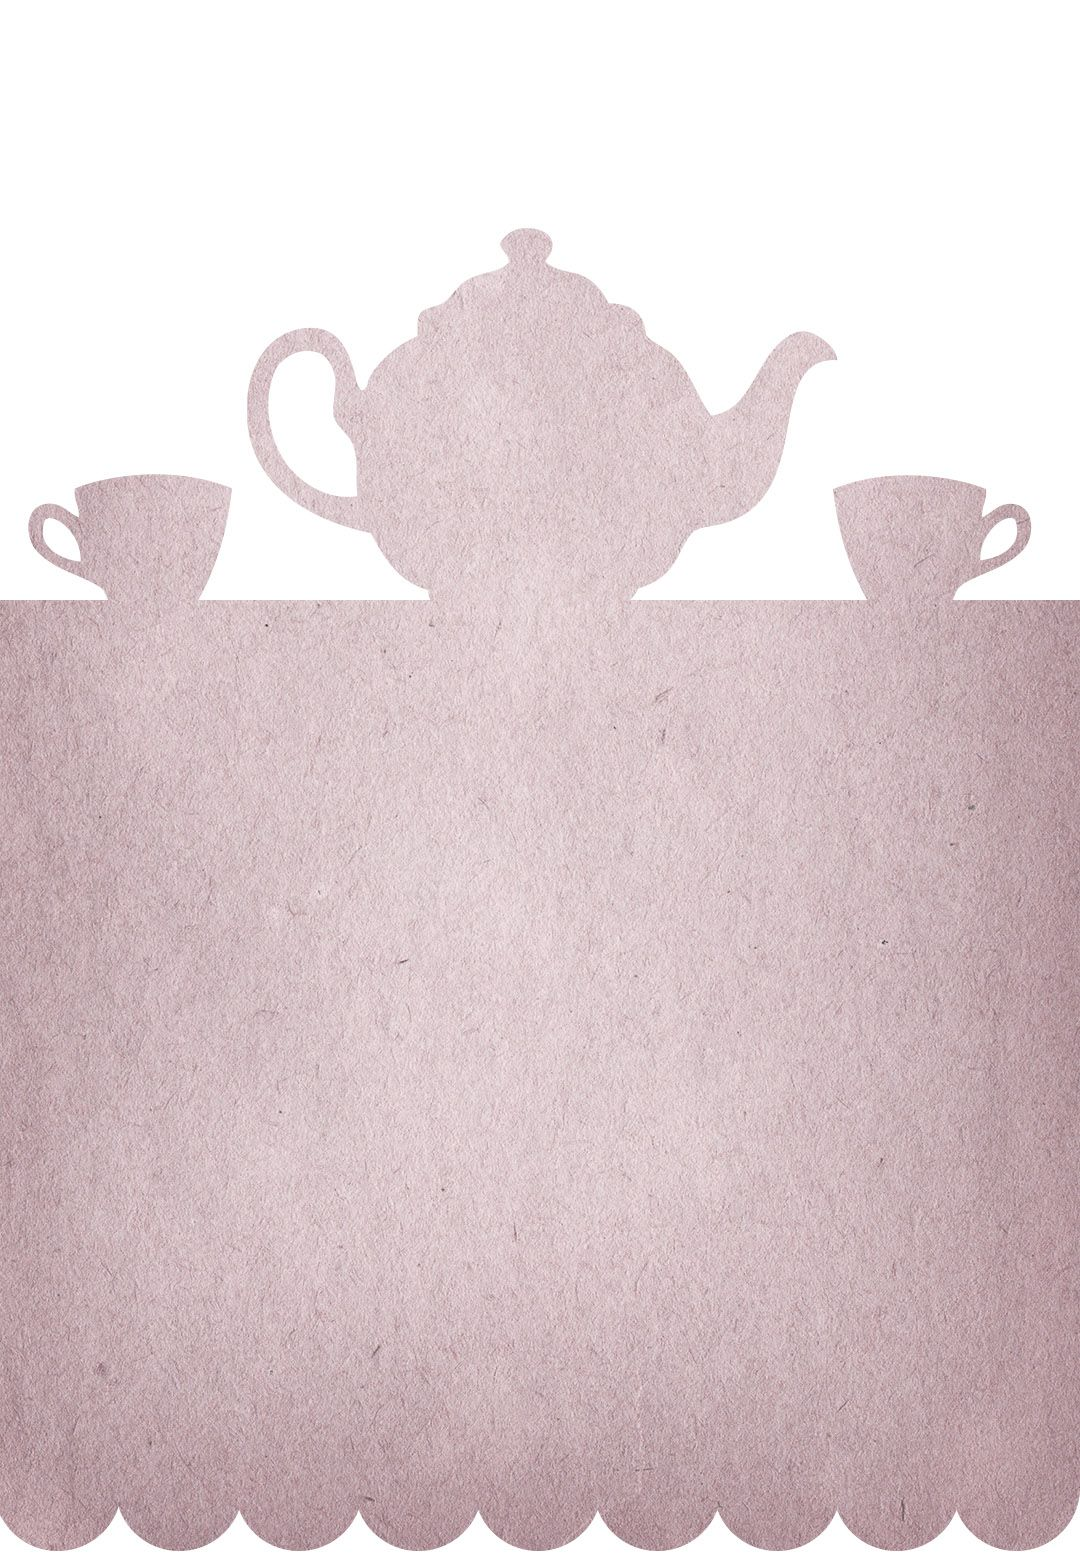 Exceptional Free Printable Tea Party Invitation